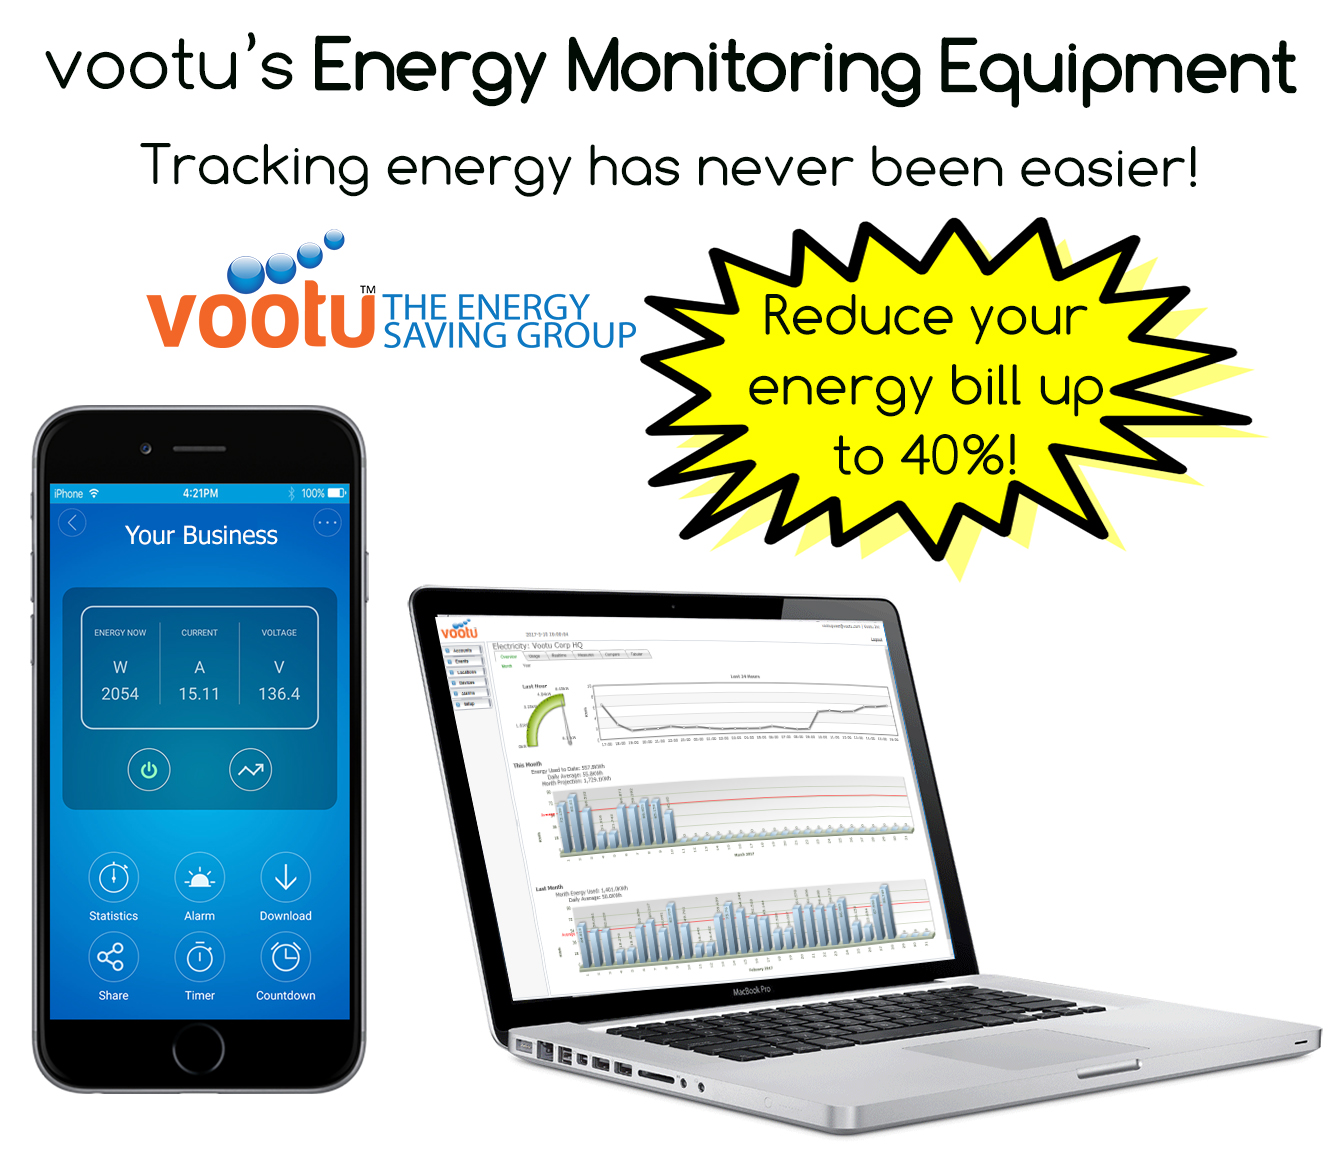 energy monitoring equipment